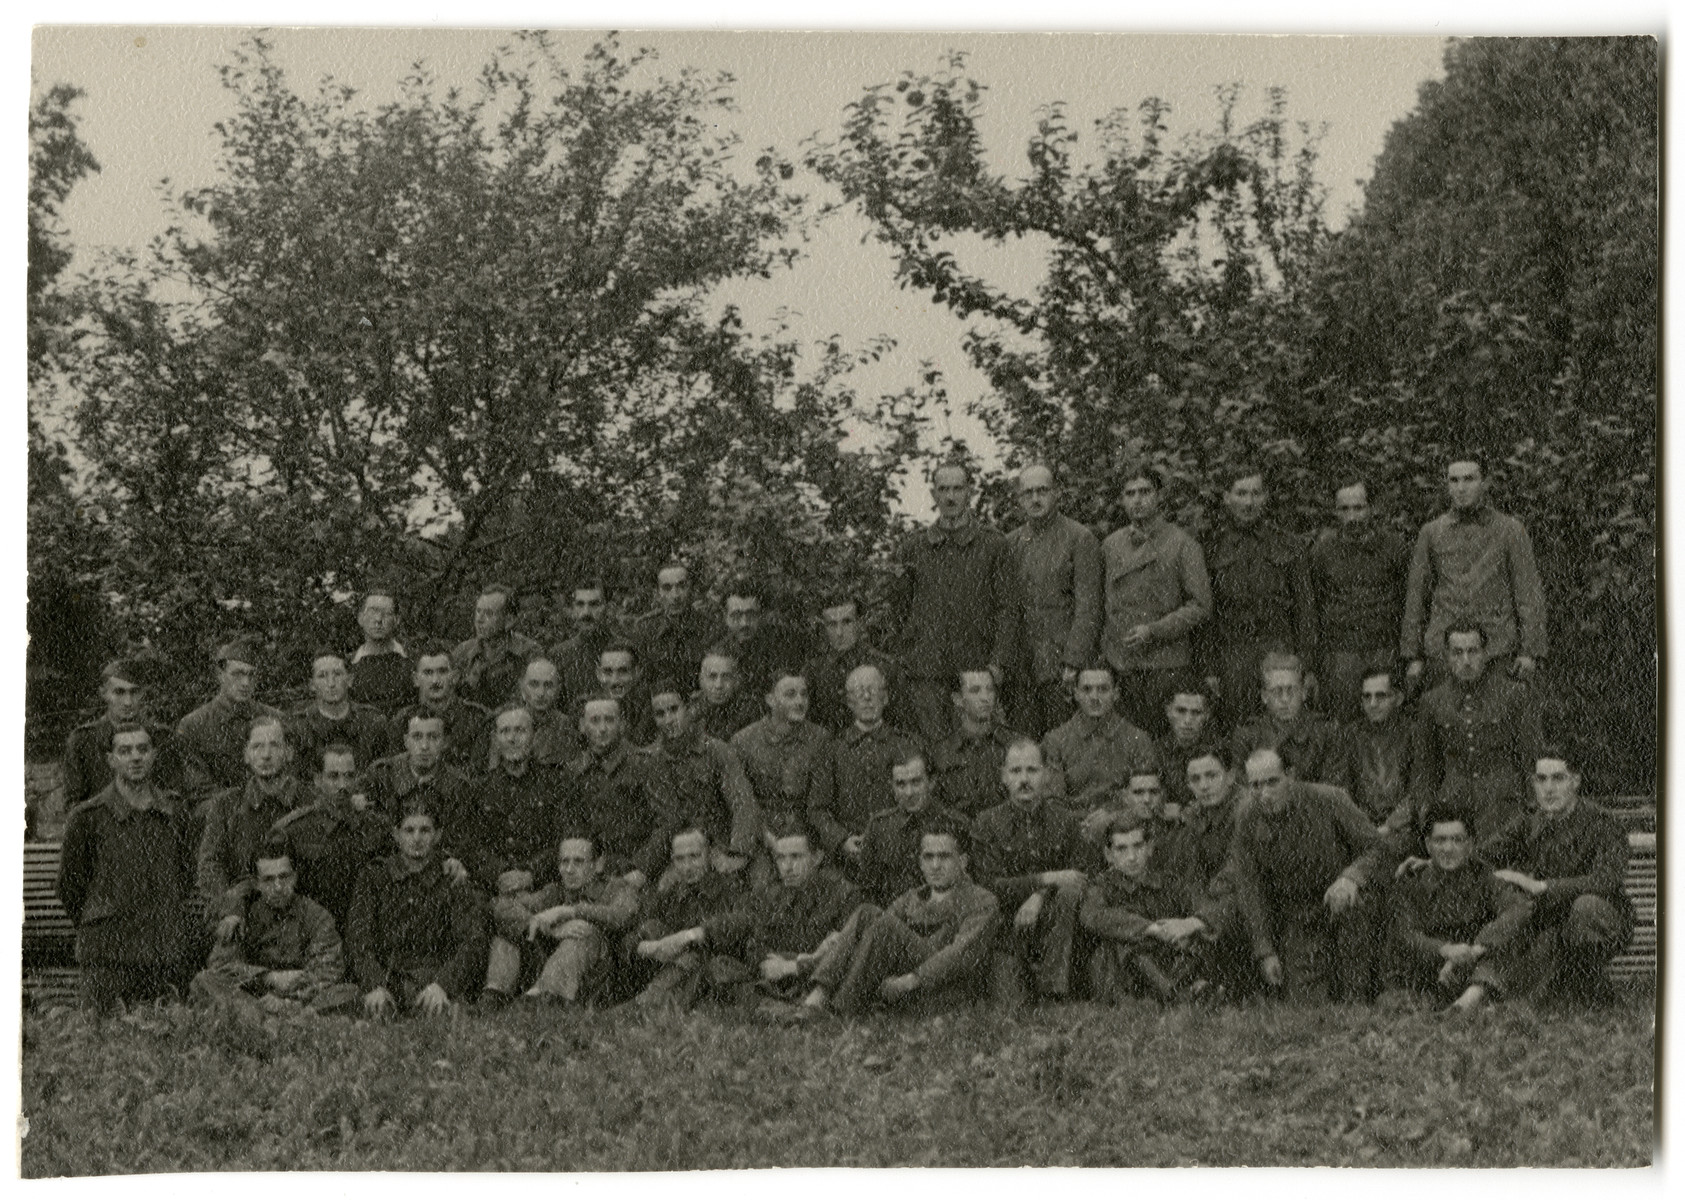 Group portrait of Belgian prisoners of war in Stalag XC in Nienburg-Weser.  Among those pictured are two Jewish POWS,  Jean-Pierre Mayer-Astruc and his friend Alexis Goldschmidt. Also pictured is Leopold Guttmann, top row, fifth from the left.